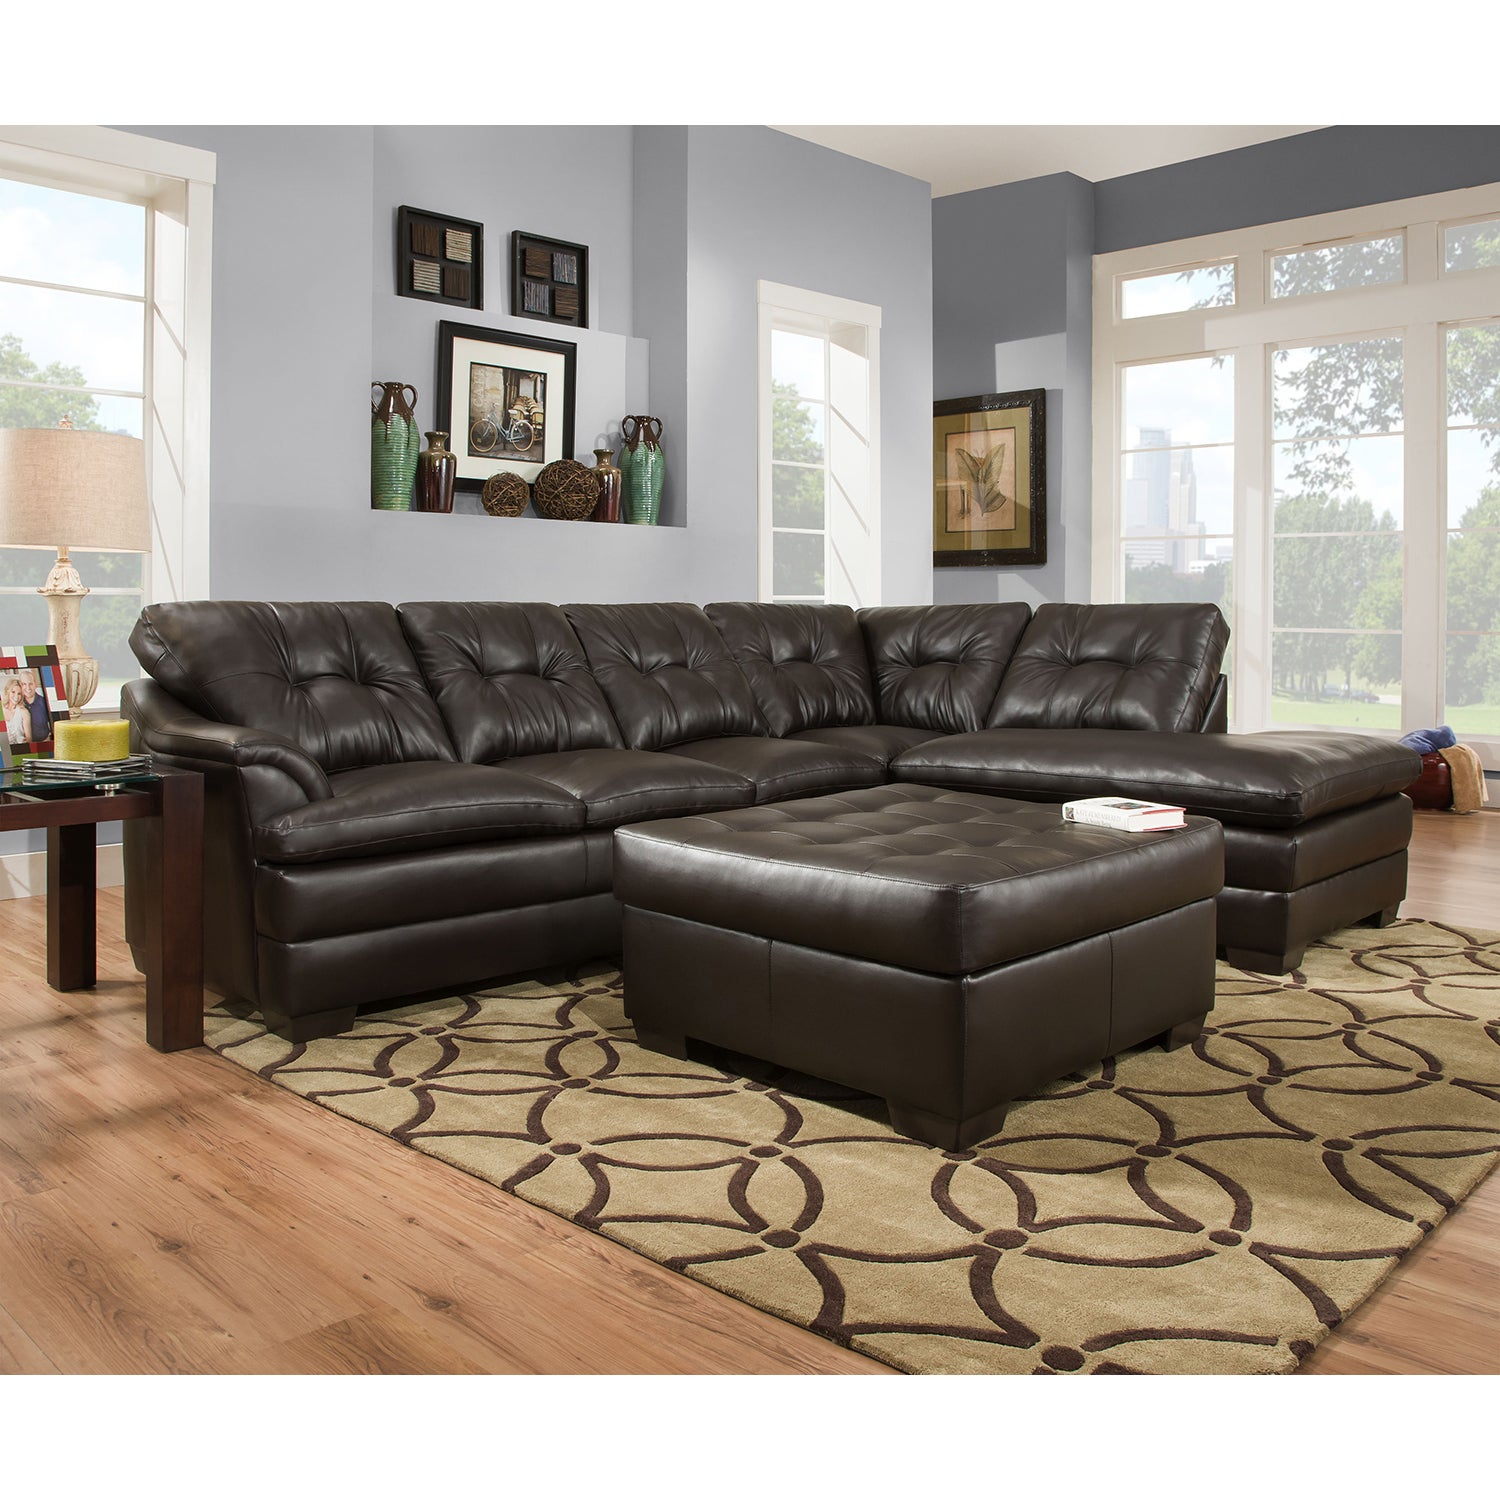 Simmons Upholstery Apollo Espresso Sectional and Ottoman ...